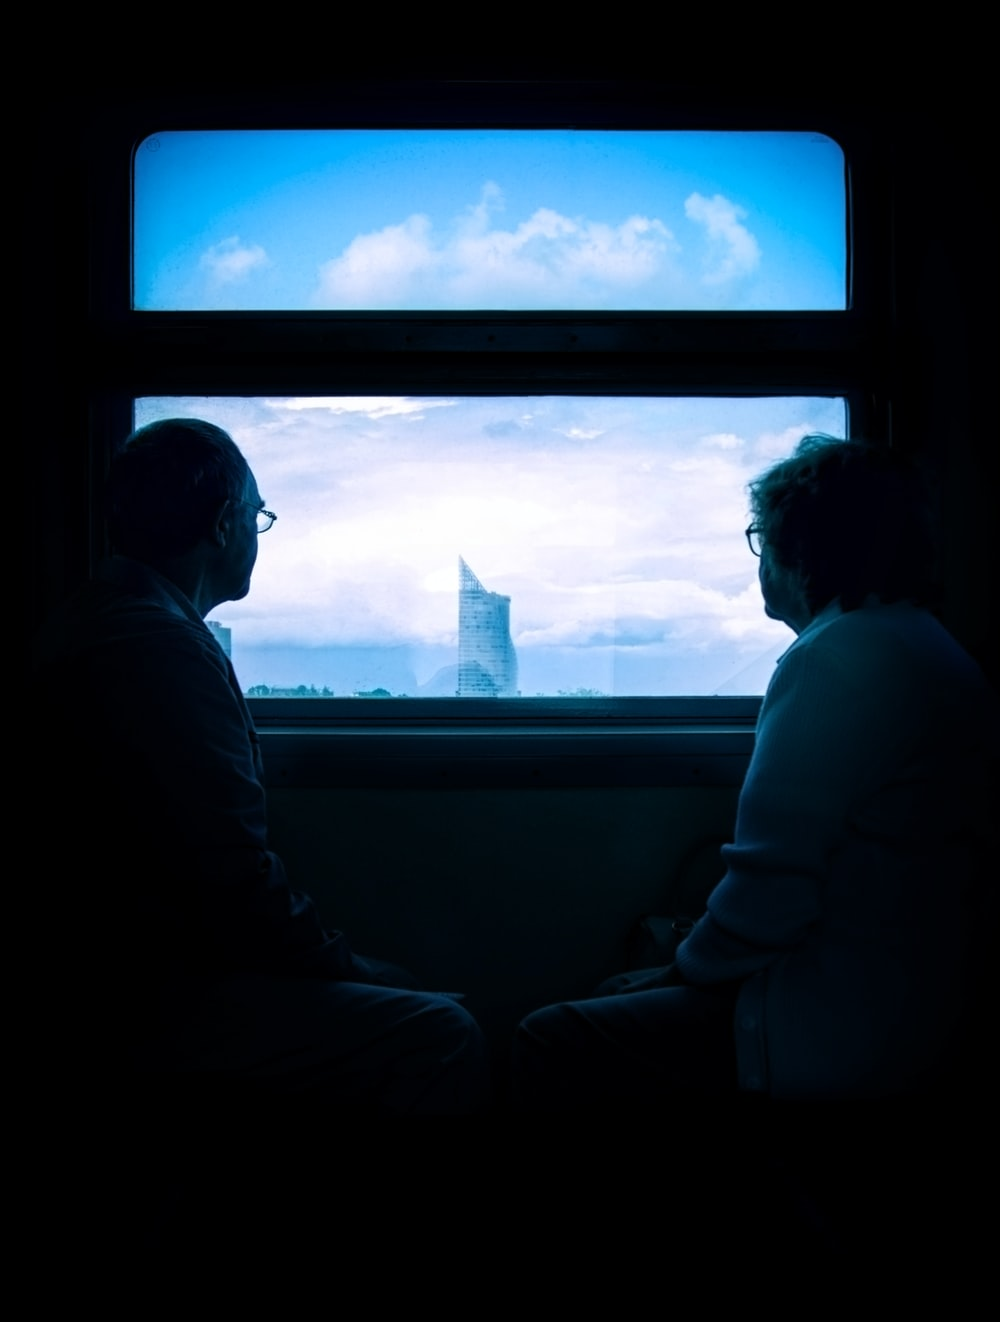 man and woman standing beside window